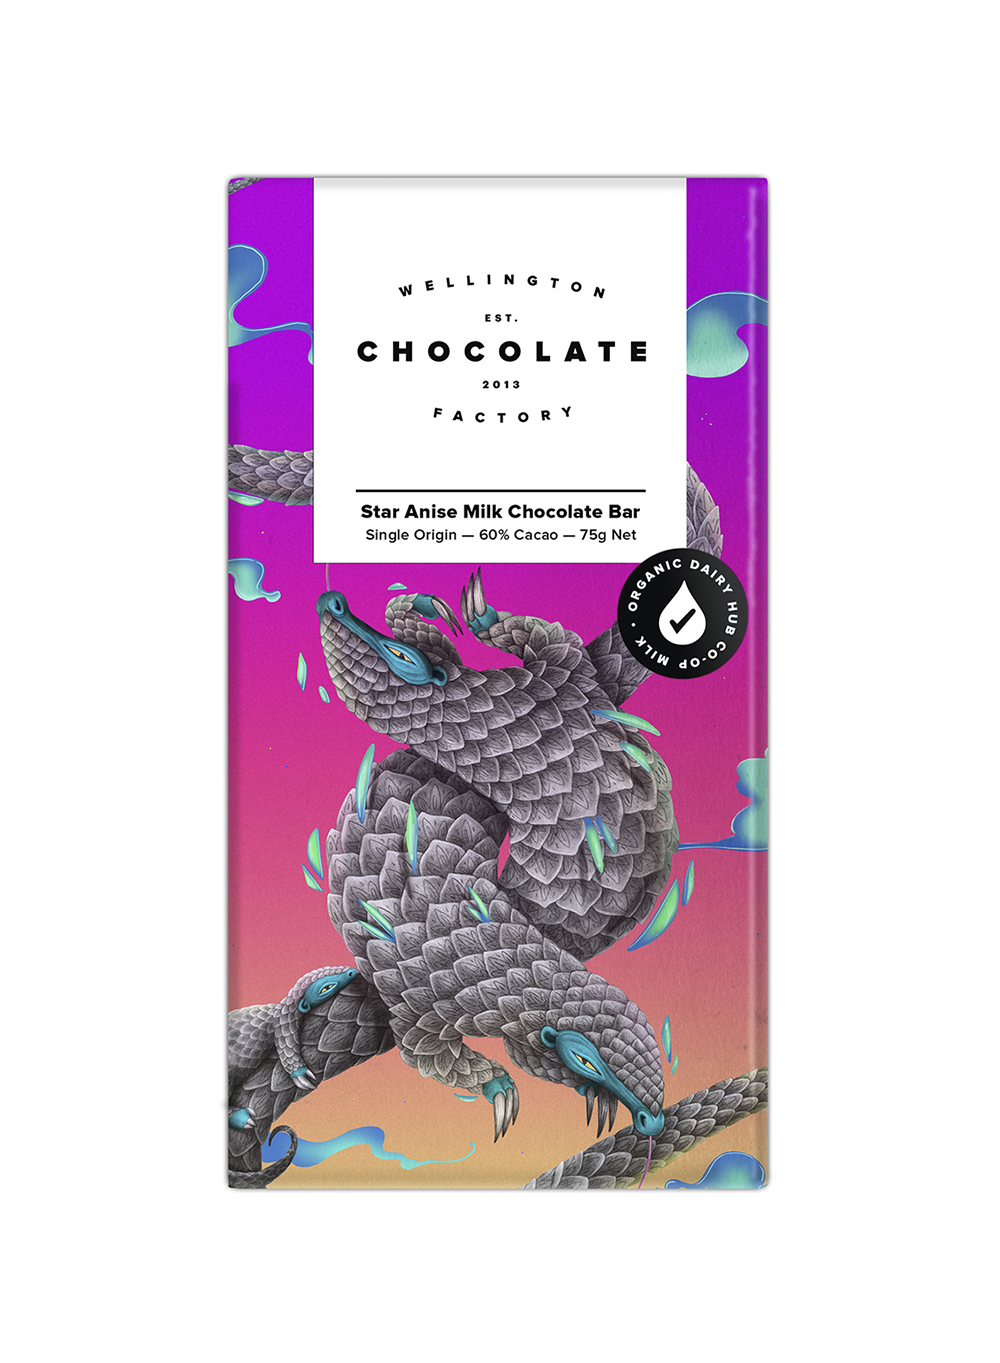 Star Anise Milk Chocolate Bar - A subtle delight that most people don't expect to love.